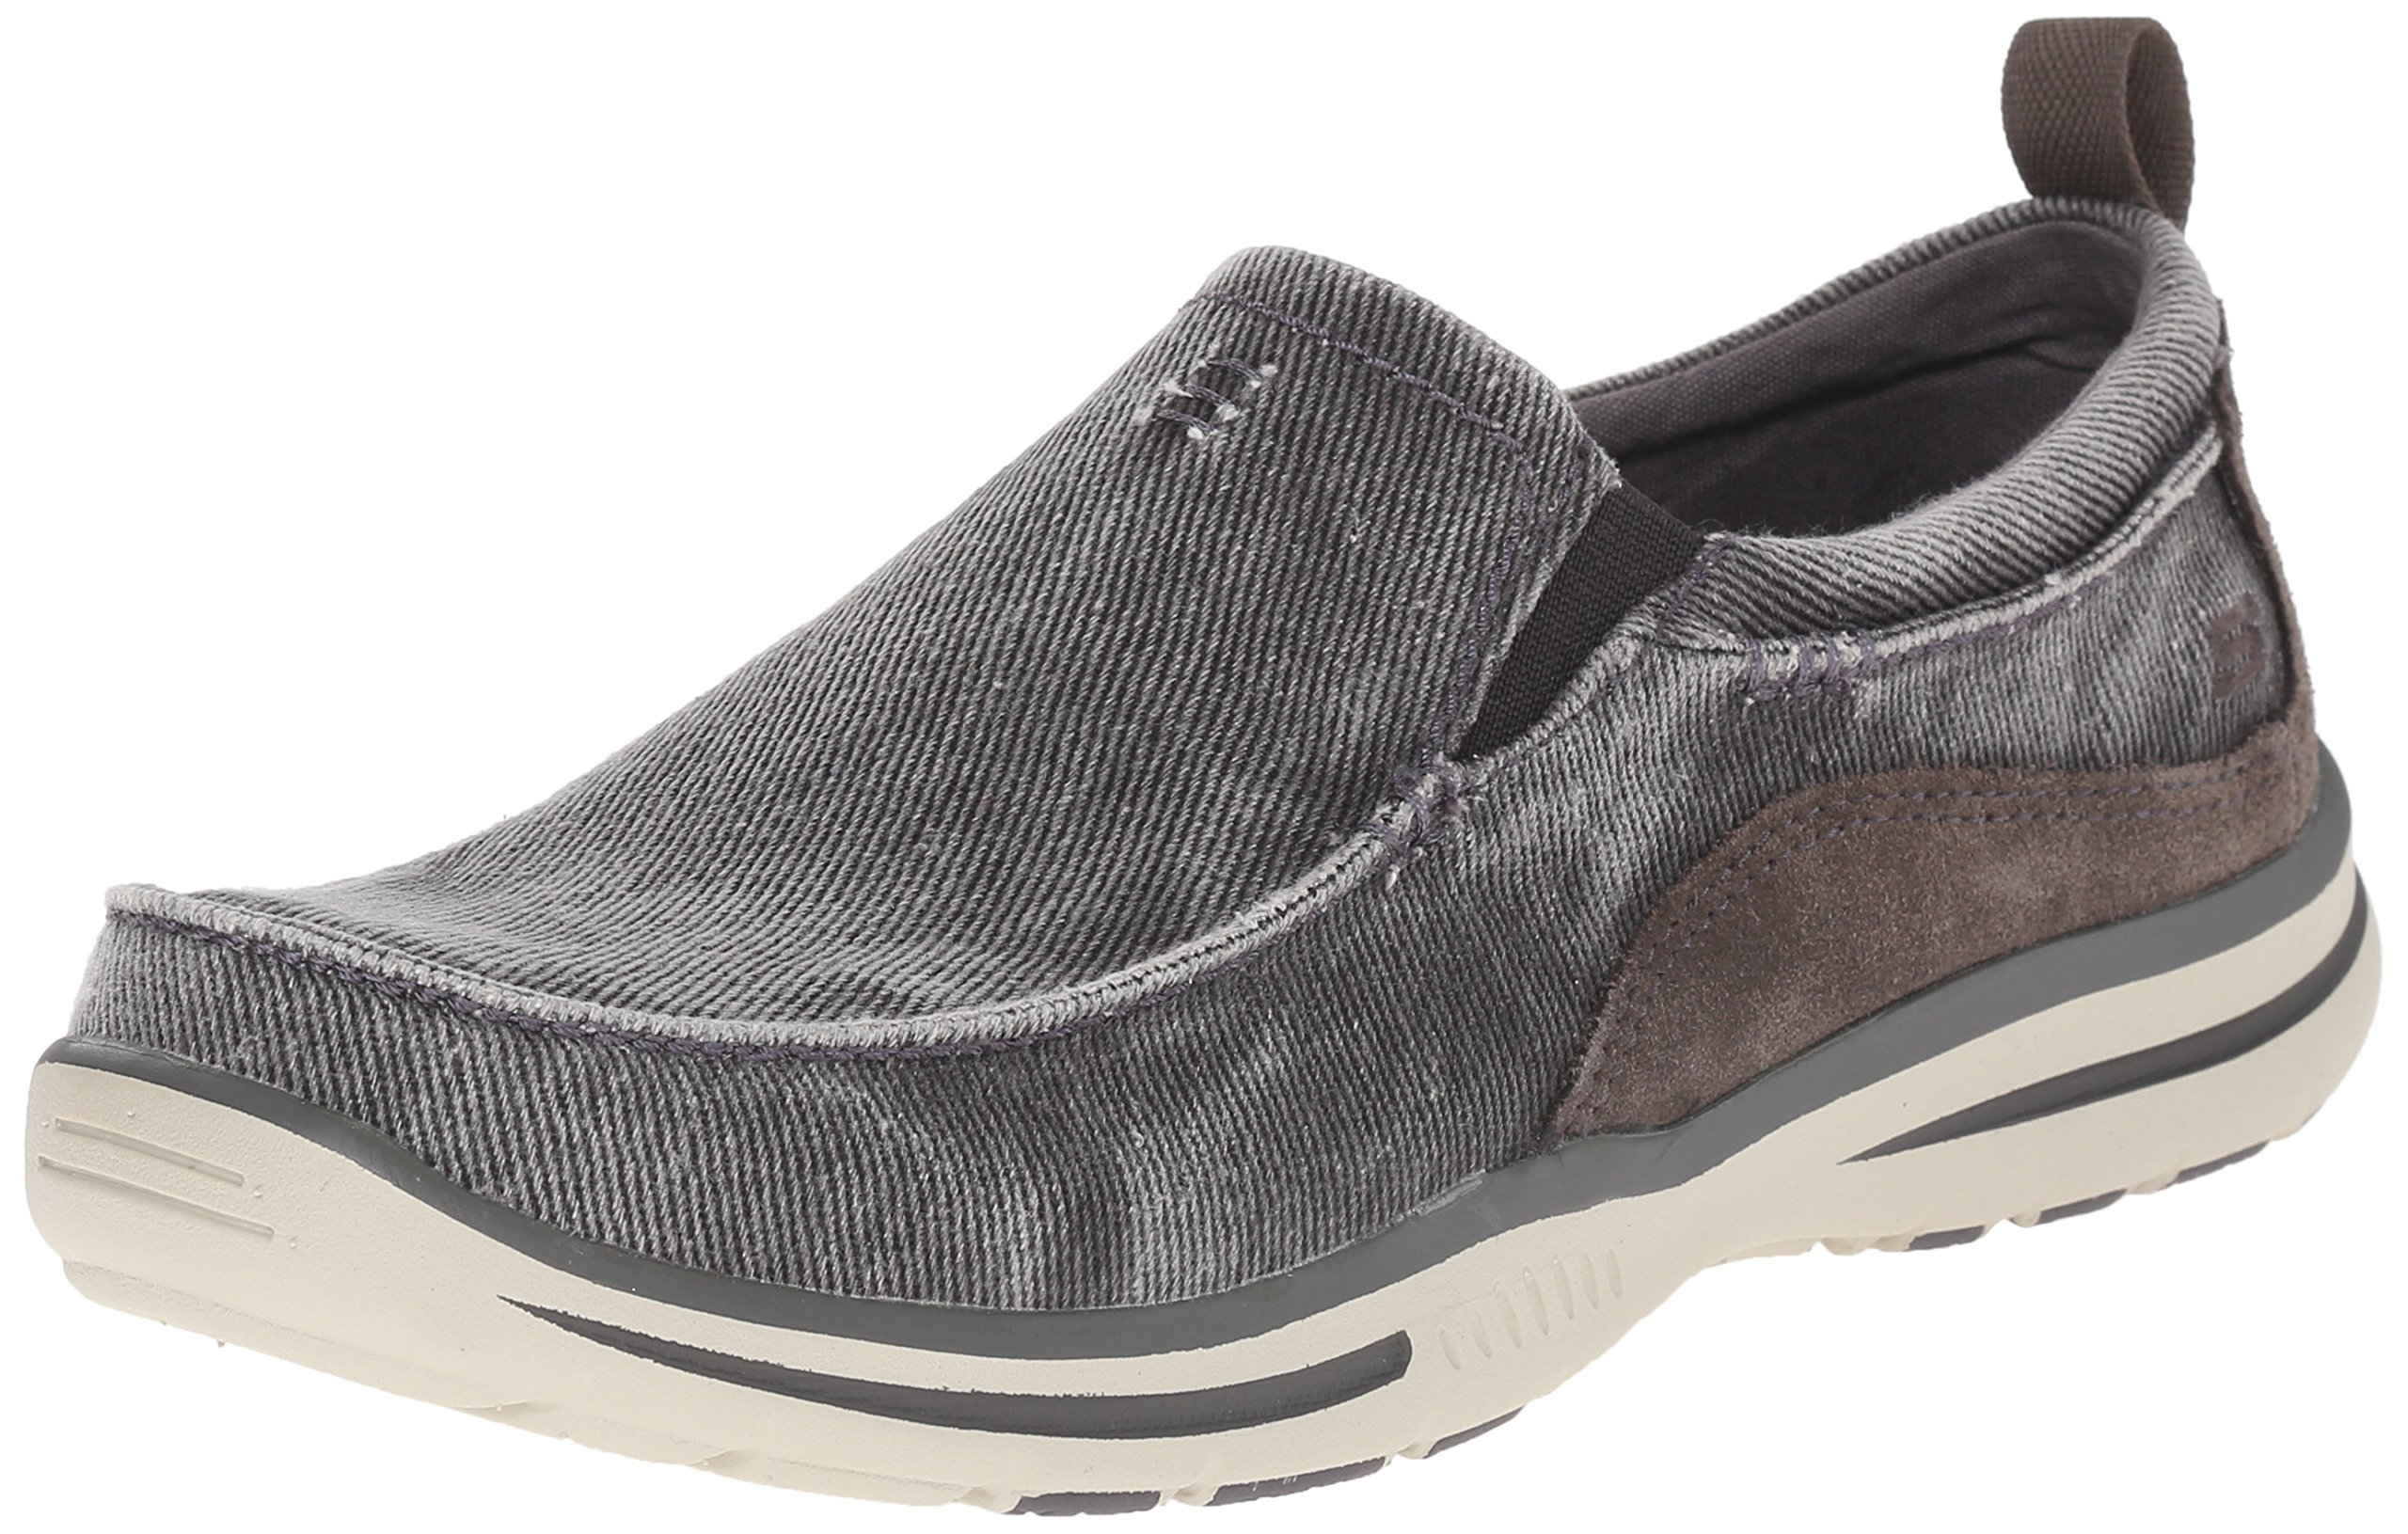 Skechers Men's Relaxed Fit Elected Drigo Slip-On Loafer,Charcoal,8 D US